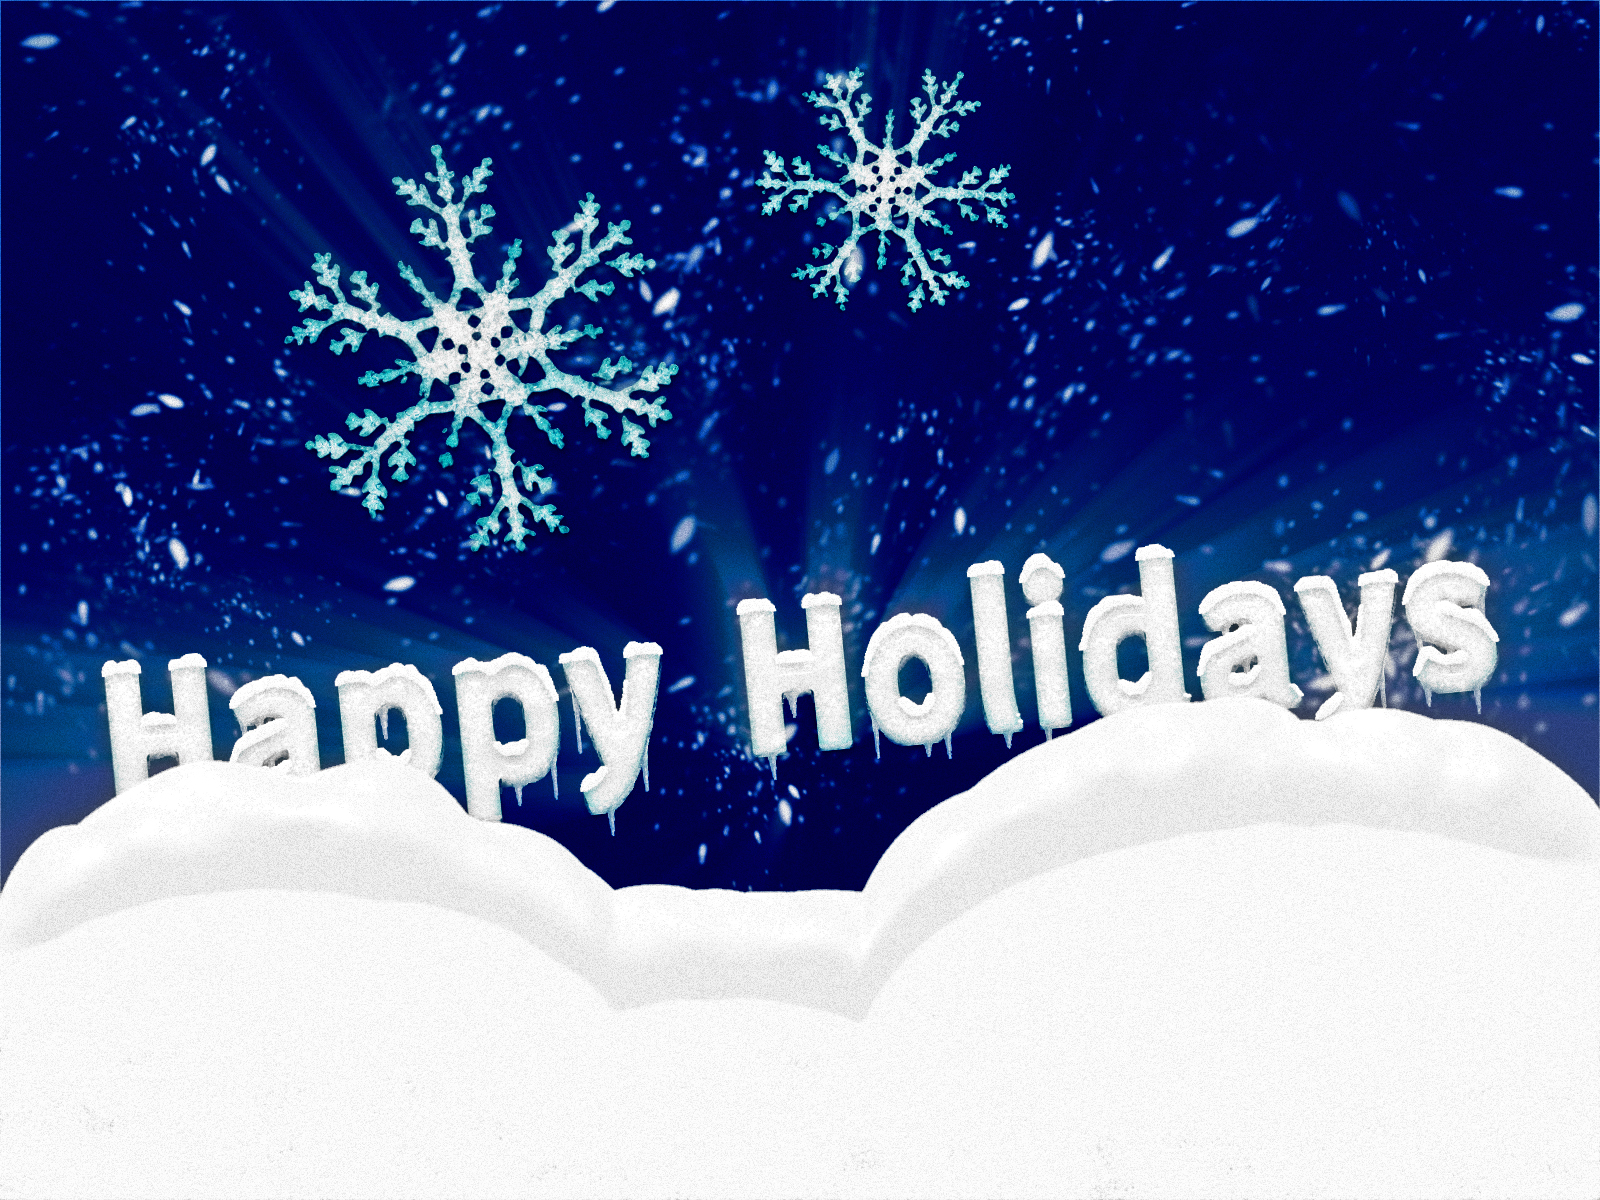 Happy Holidays from us at Jiffy Lube in Southern California